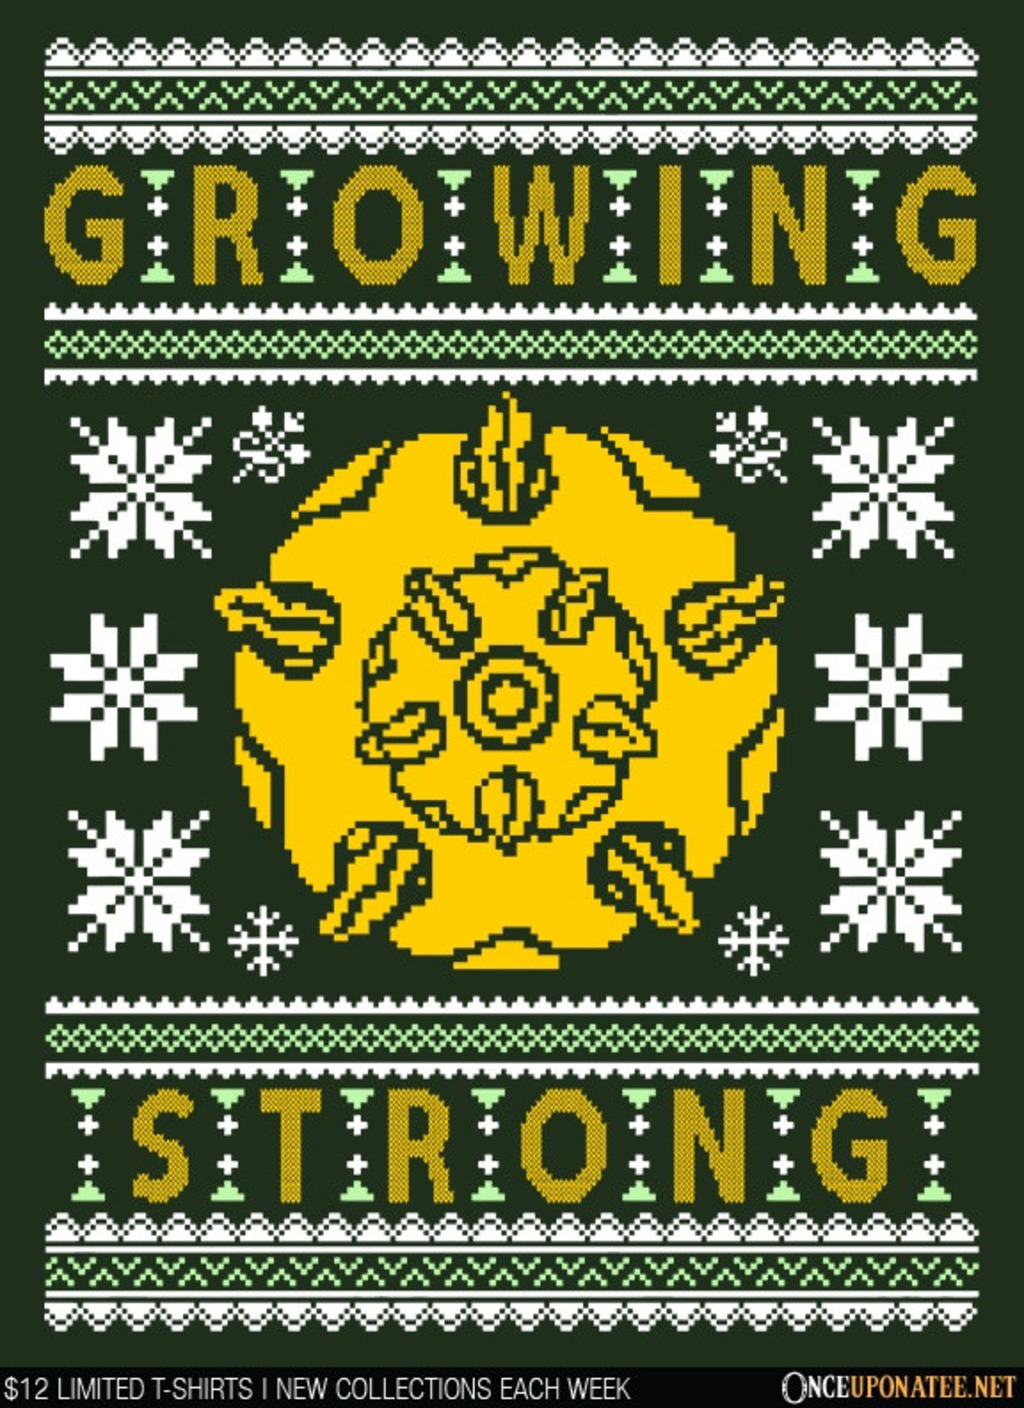 Once Upon a Tee: The Holidays are Growing Strong